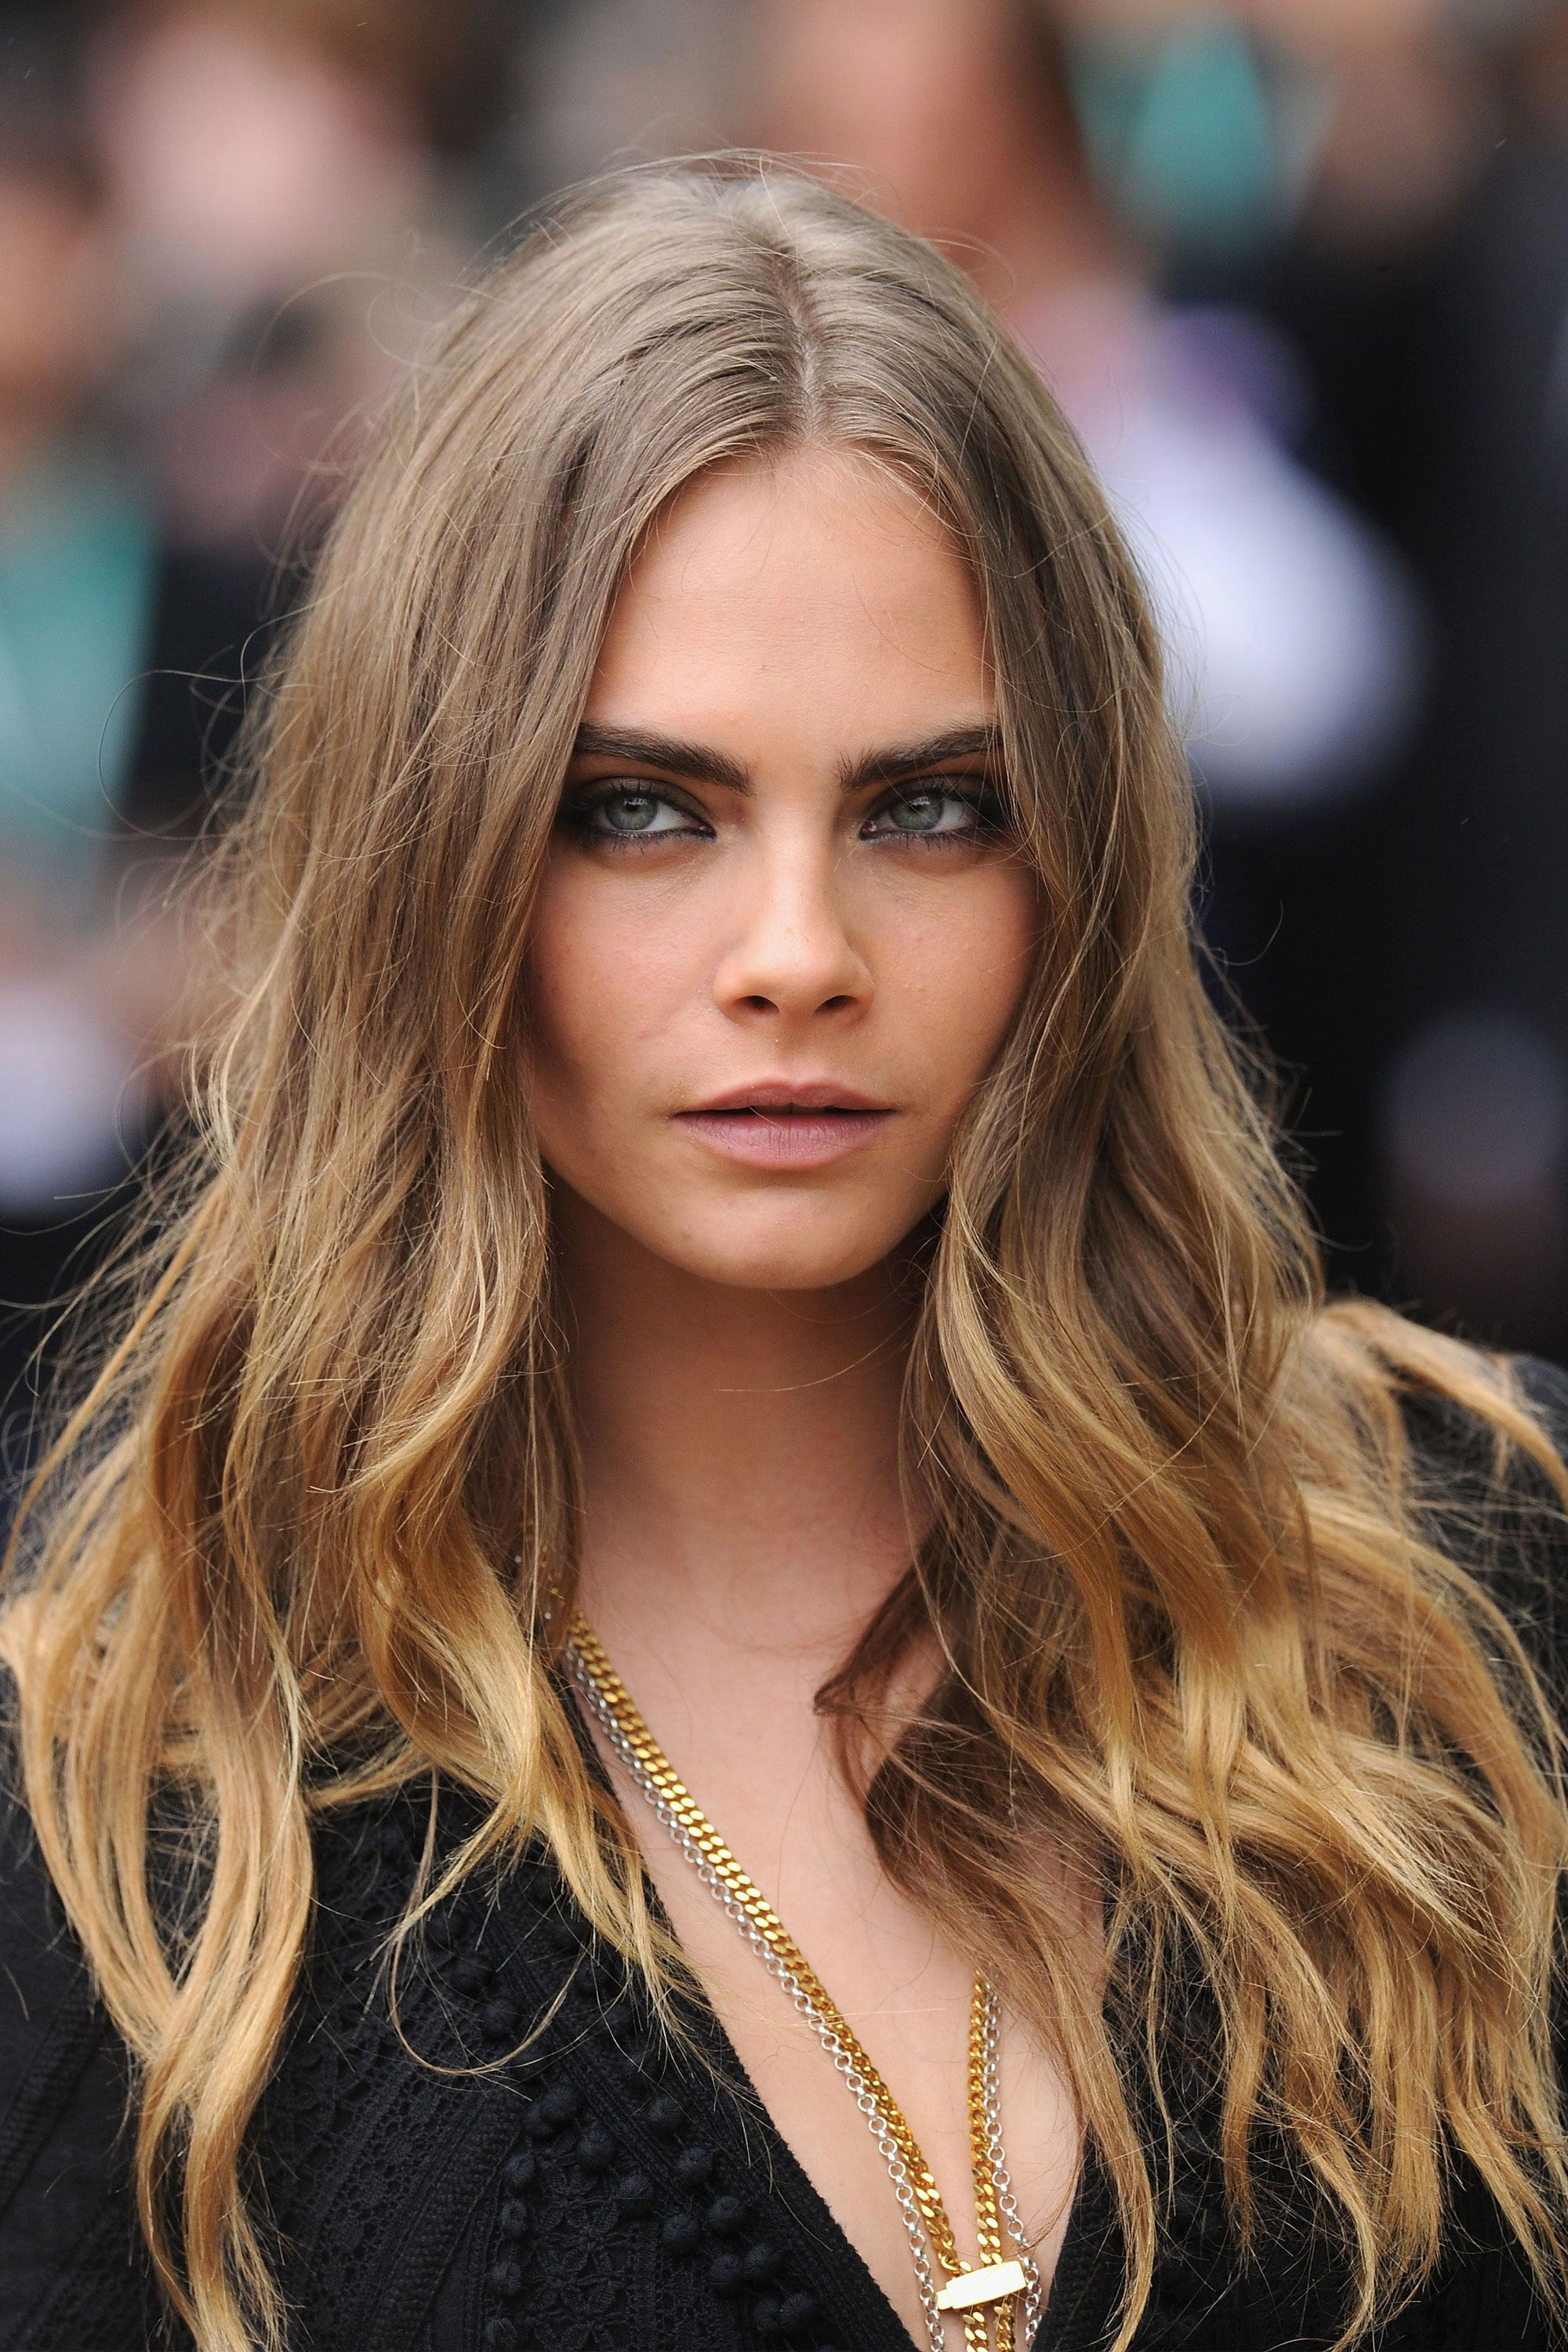 Hairstyles That Are So Perfect for Winter  Cara delevingne Sexy